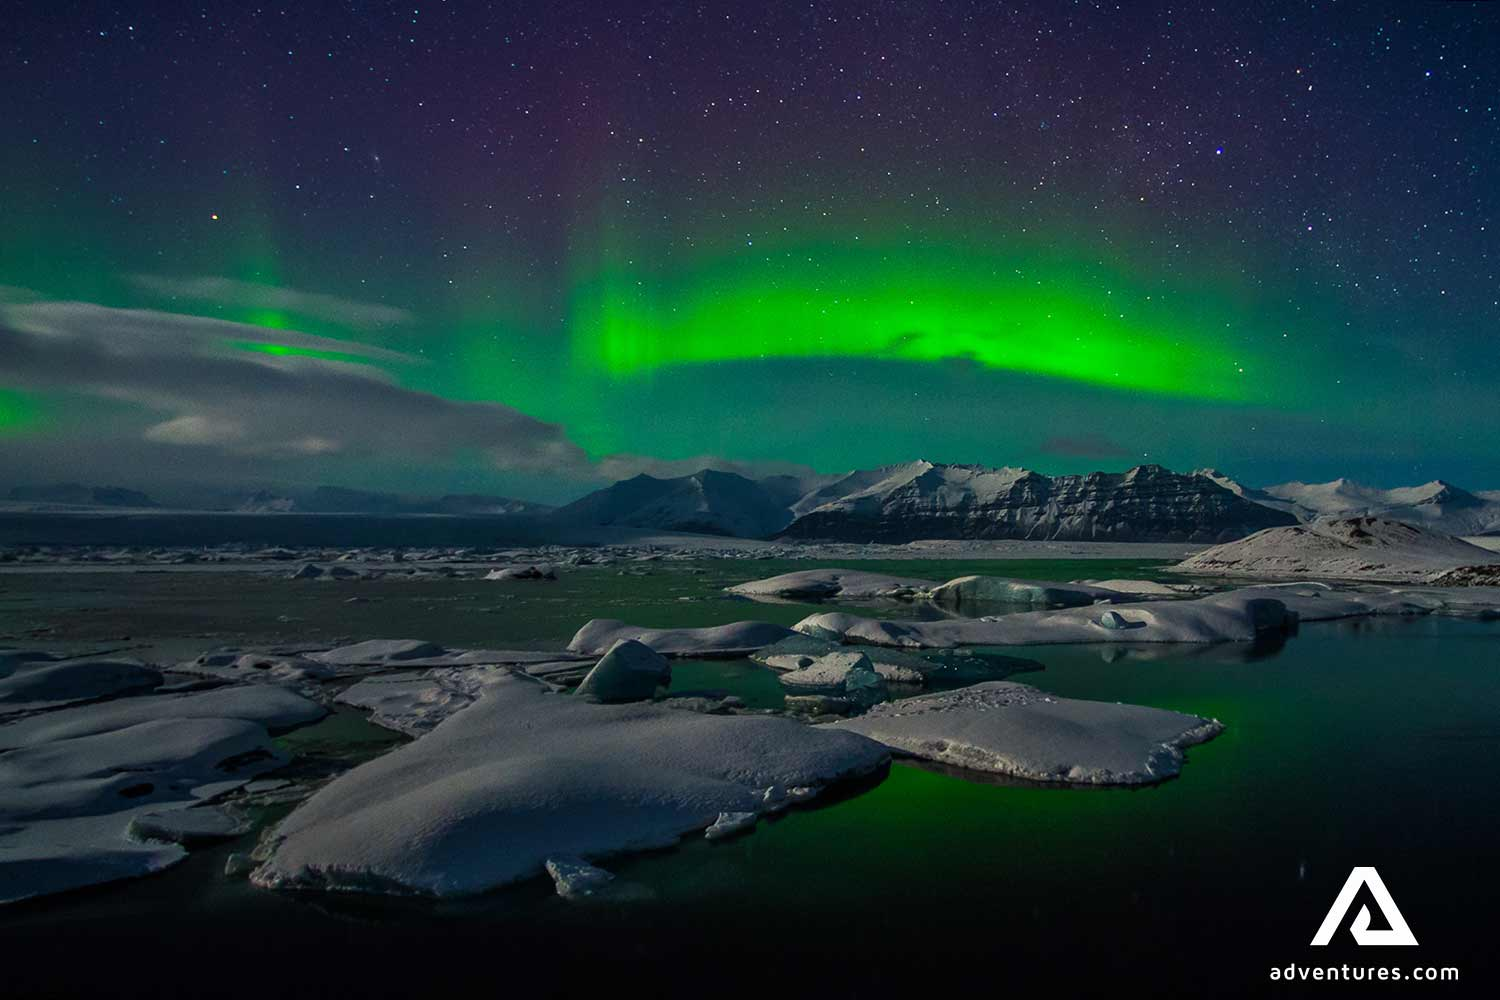 2 Day Tour Package of Iceland's South Coast